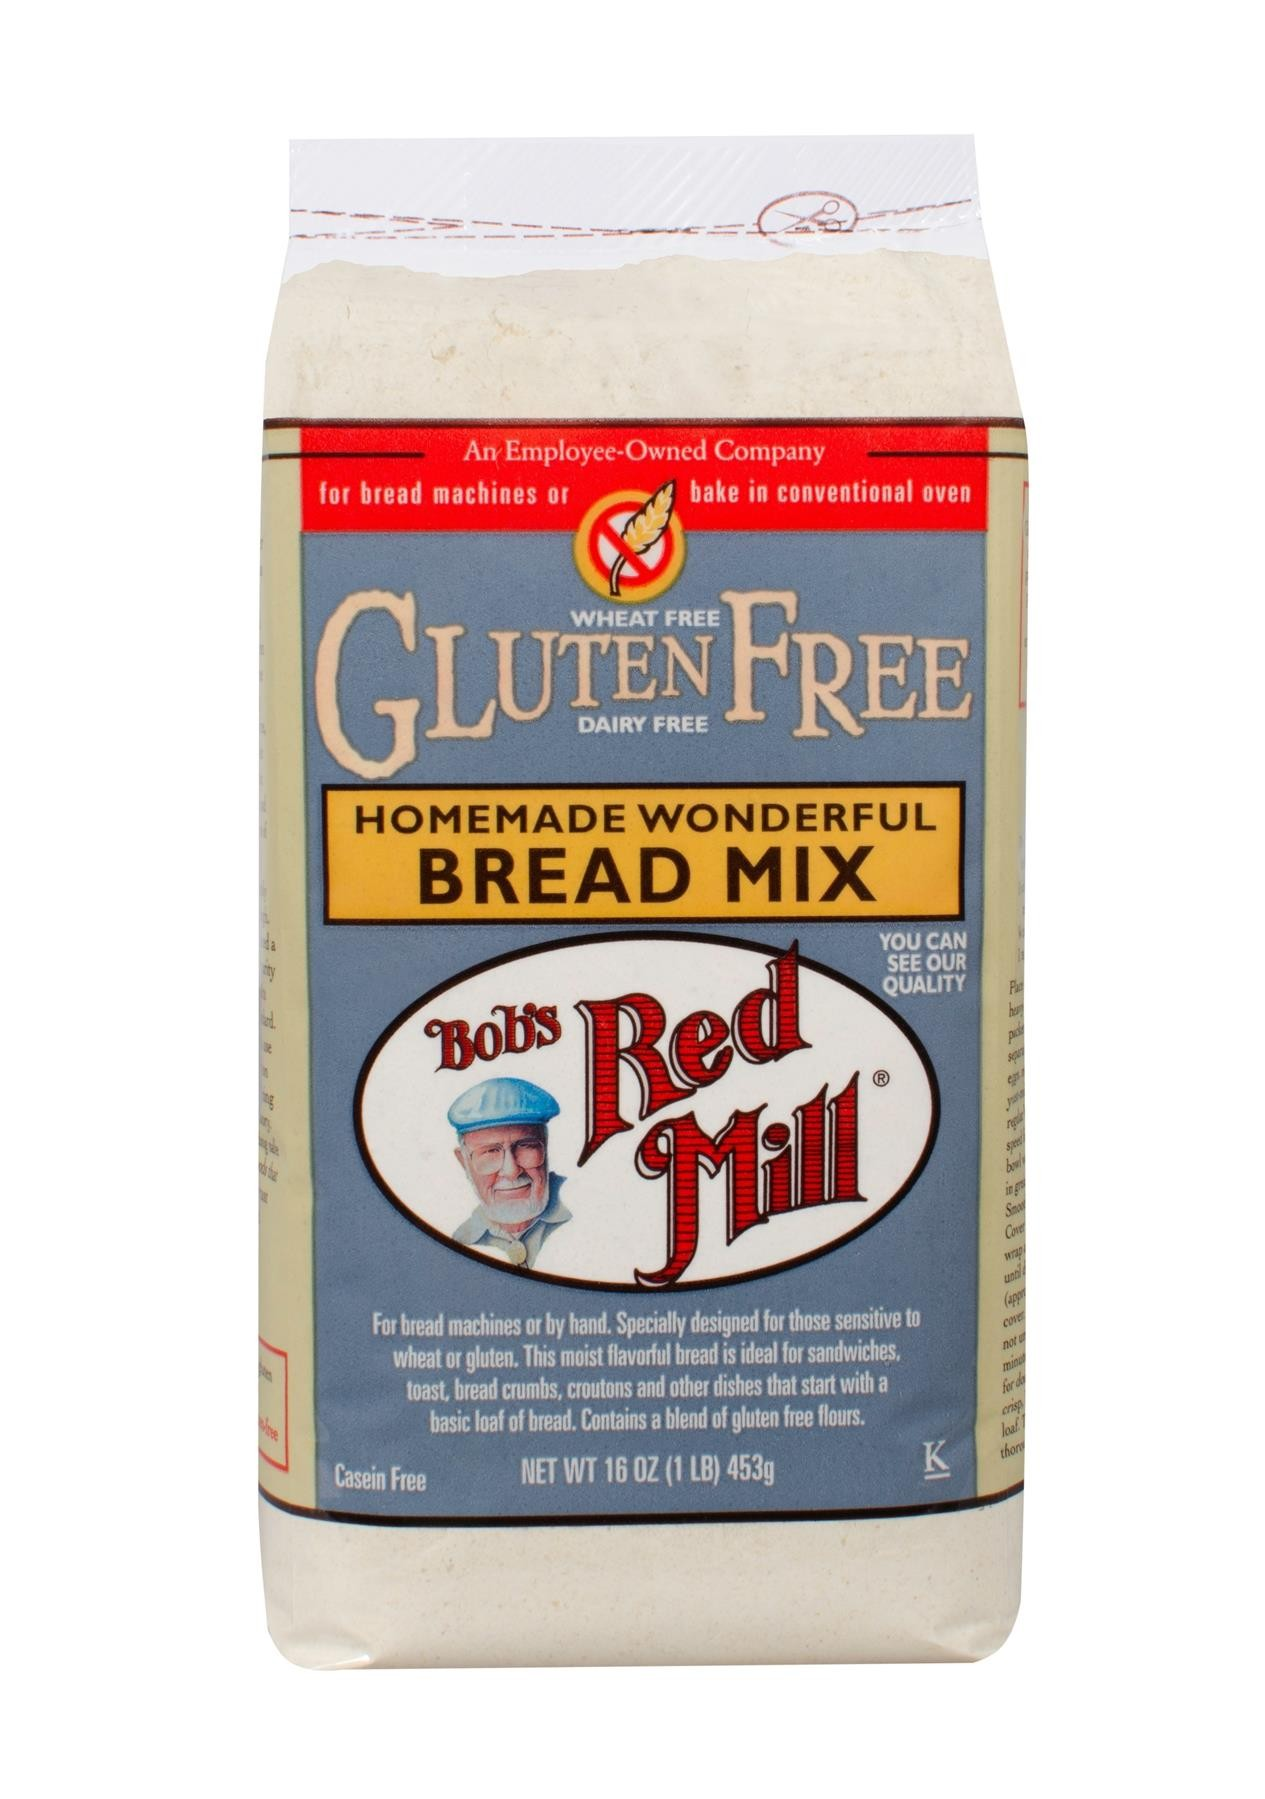 1602c164_glutenfree_homemadewonderfulbreadmix_f_1800.jpg